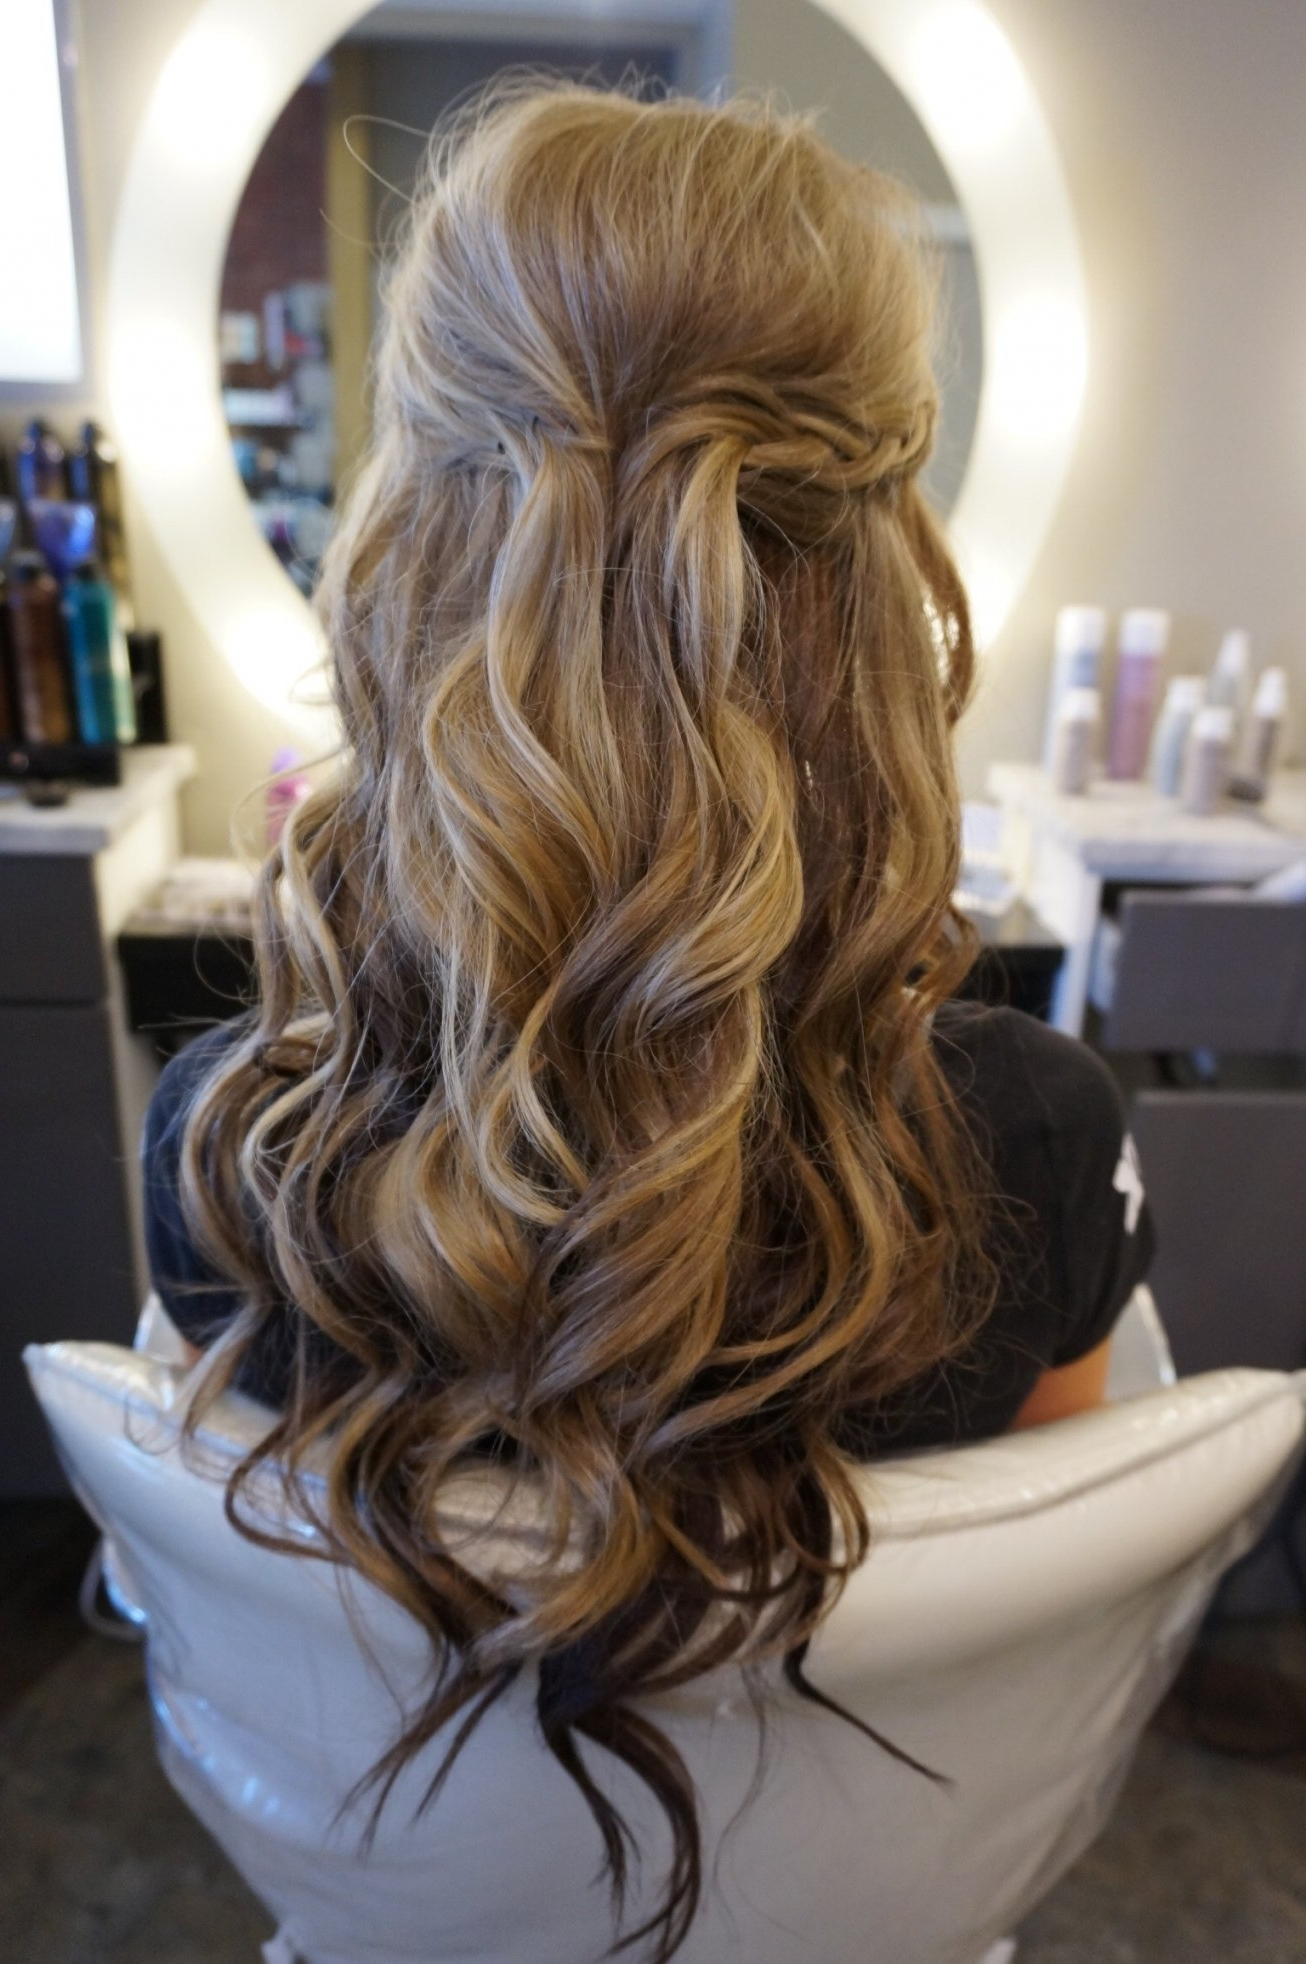 Short Wedding Hair Half Up Half Down Inspirational Curly Hair Half With Most Popular Curly Hair Half Up Wedding Hairstyles (View 12 of 15)